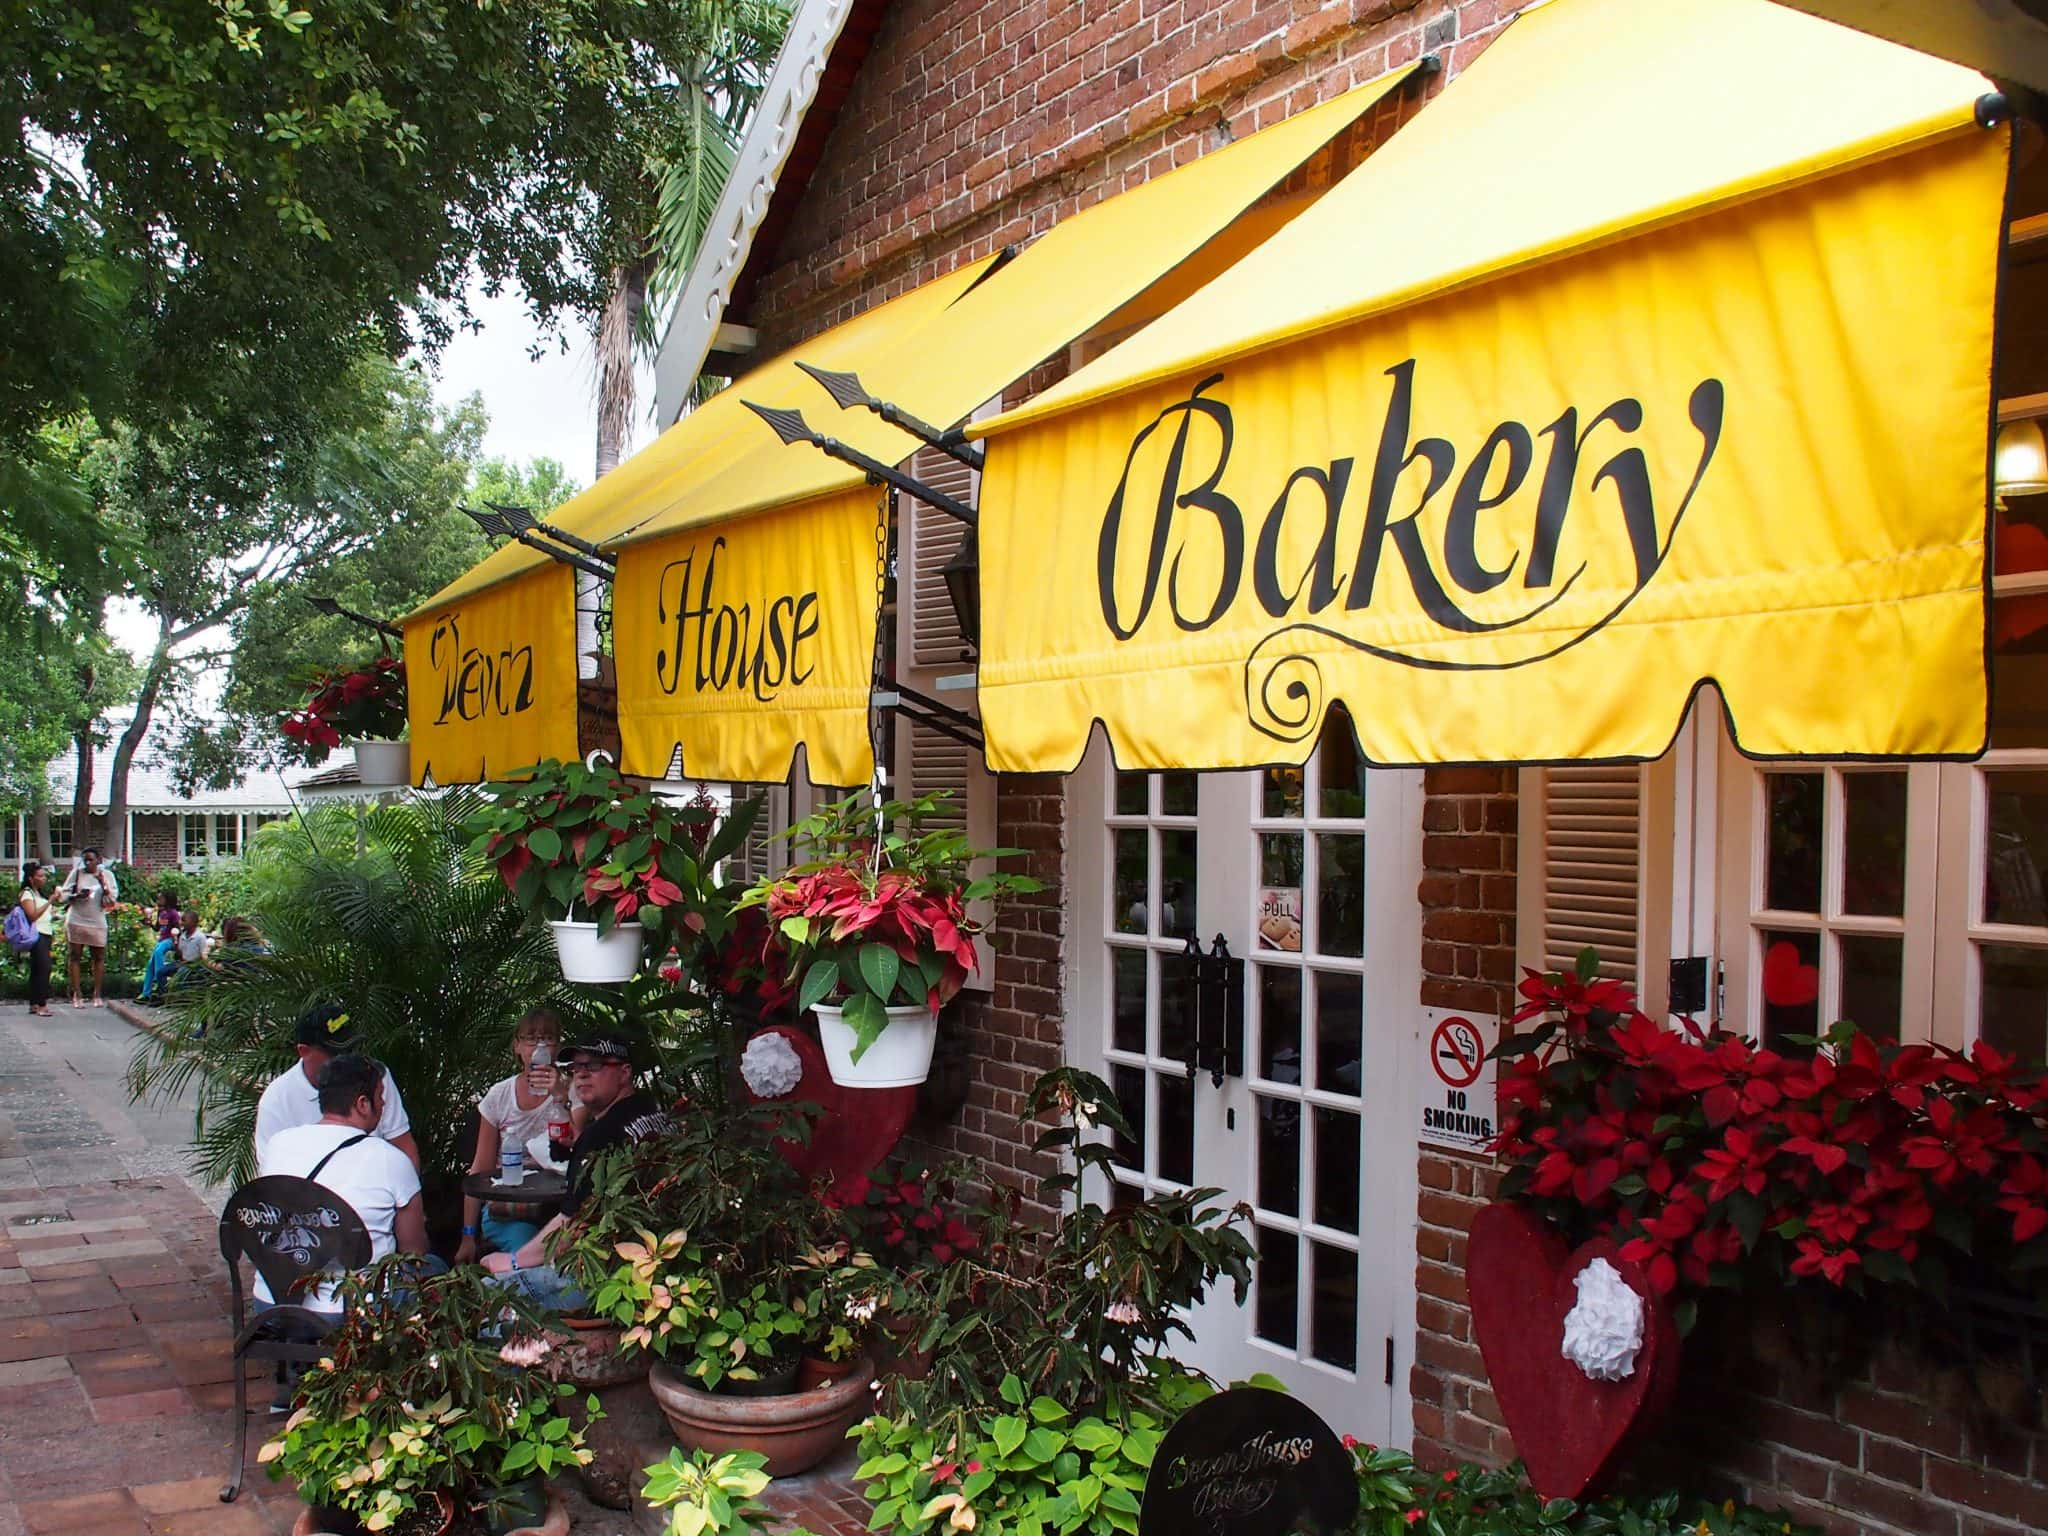 Does Devon House Bakery Make The Best Jamaican Patty?